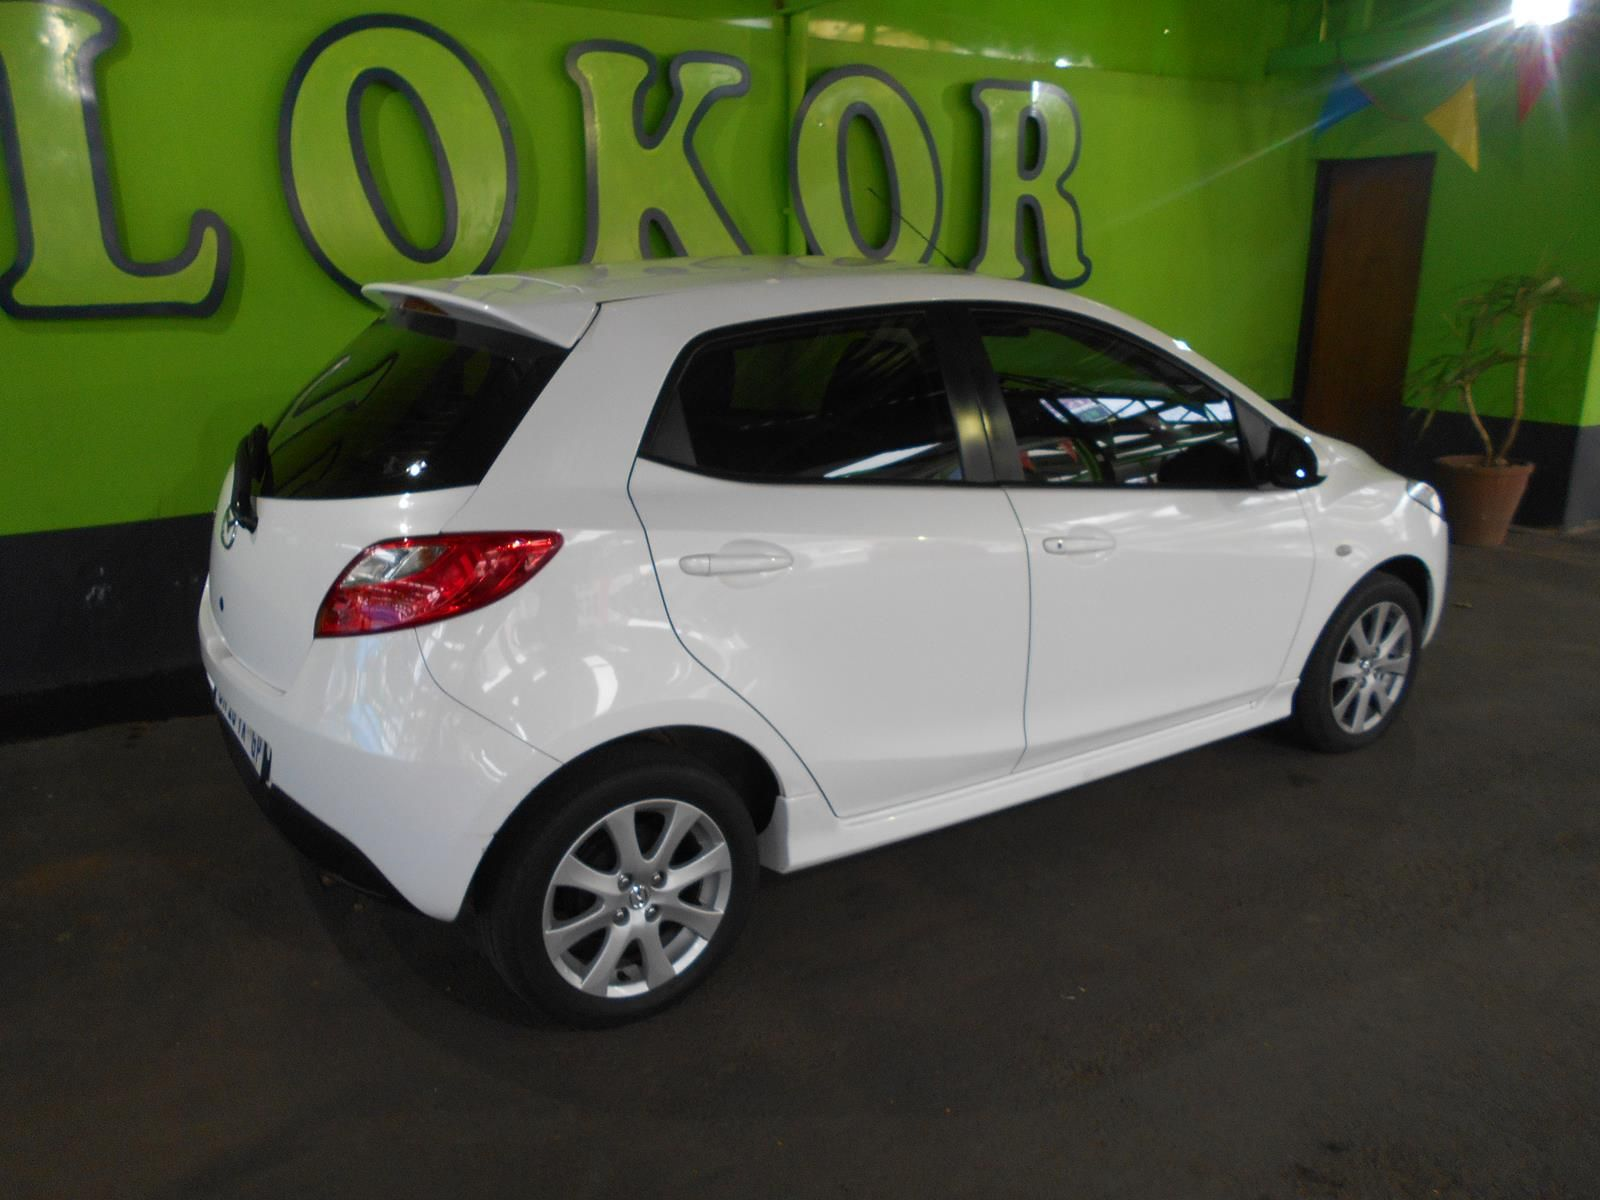 2011 Mazda 2 R 128 990 For Sale Kilokor Motors